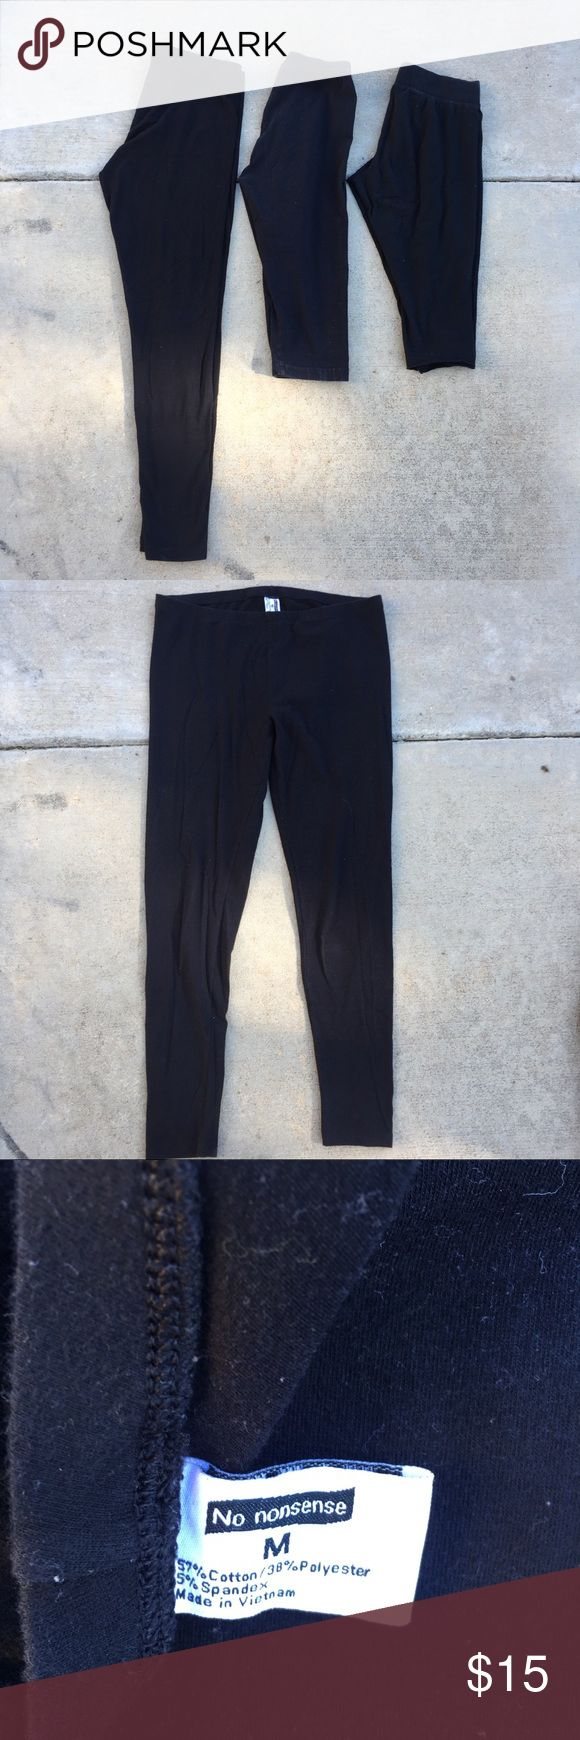 3 for $15 Black Leggings size M 3 for $15 Black Leggings size M  The bundle cons...